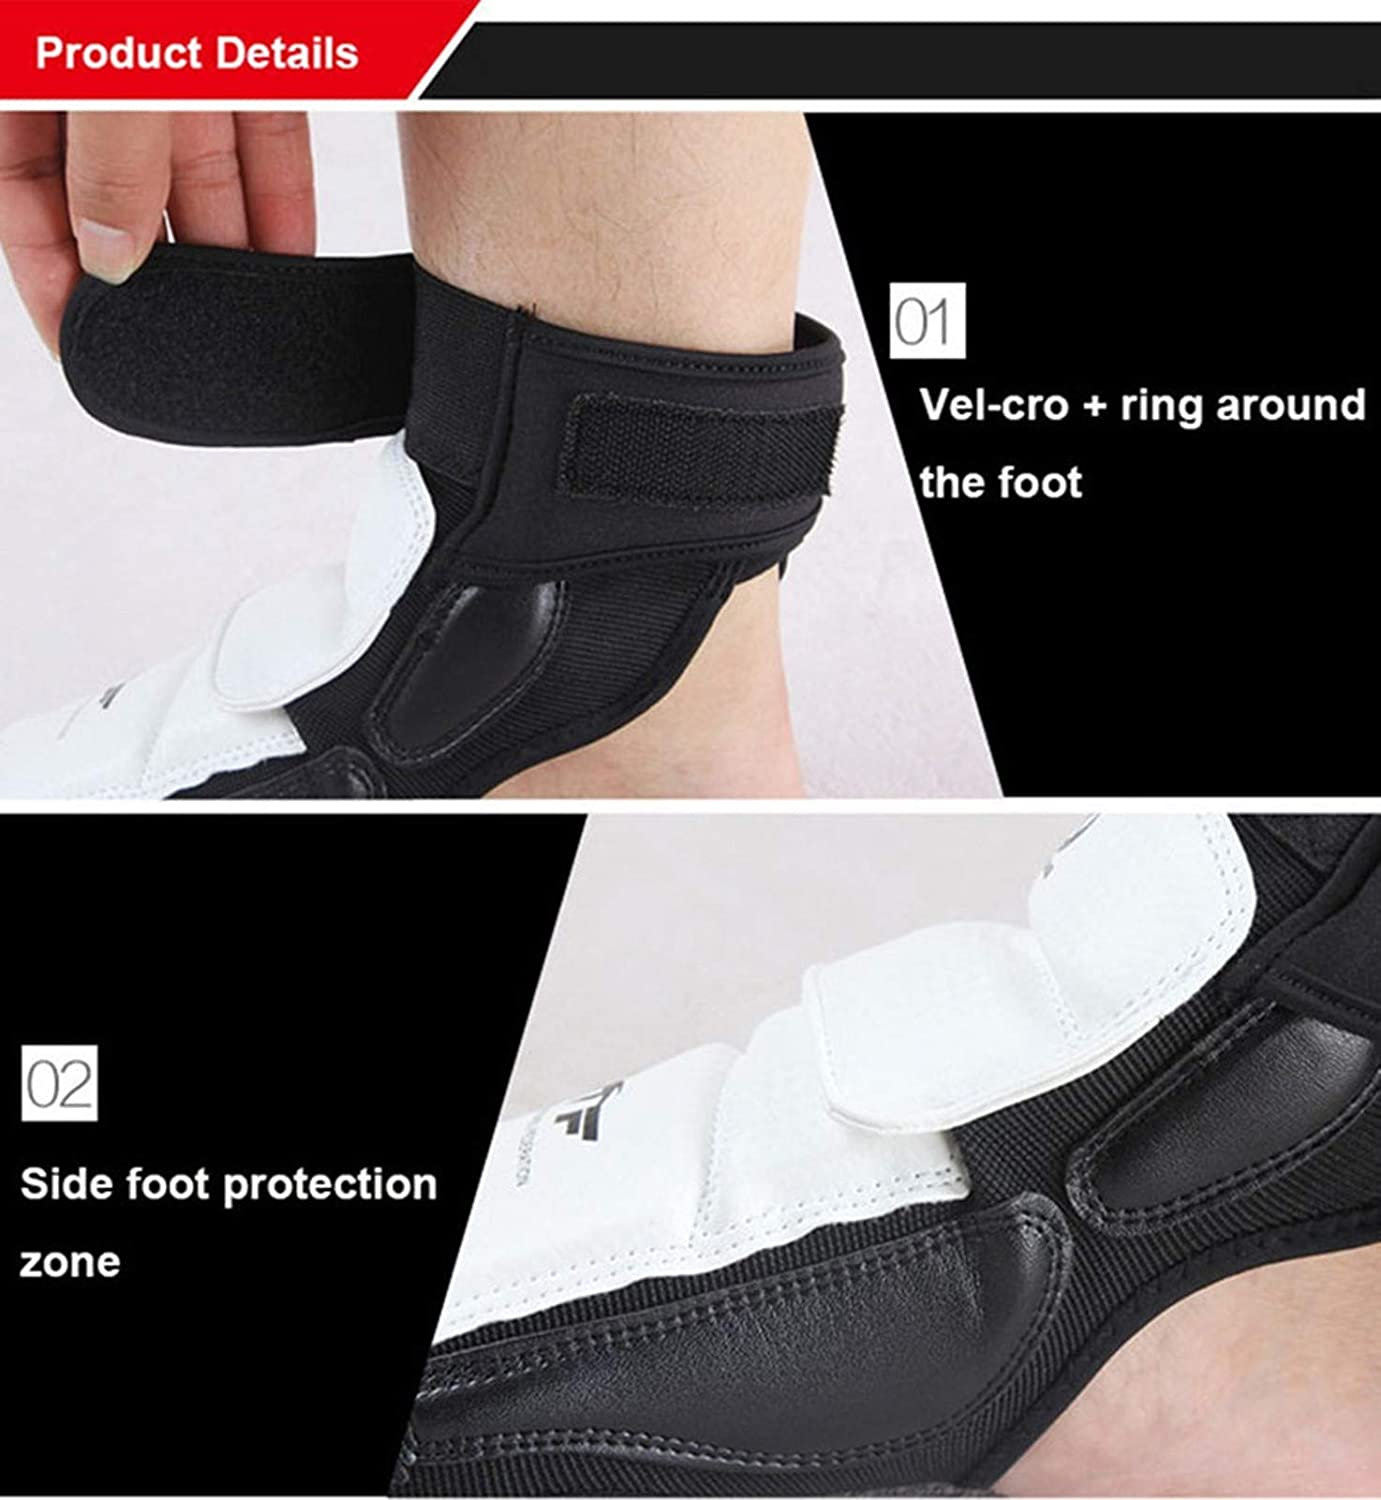 LAAOO Taekwondo Training Boxing Foot Protector Gear WTF Approved Martial Arts Fight Boxing Punch Bag Sparring MMA UFC Thi for Men Women Kids Children : Sports & Outdoors